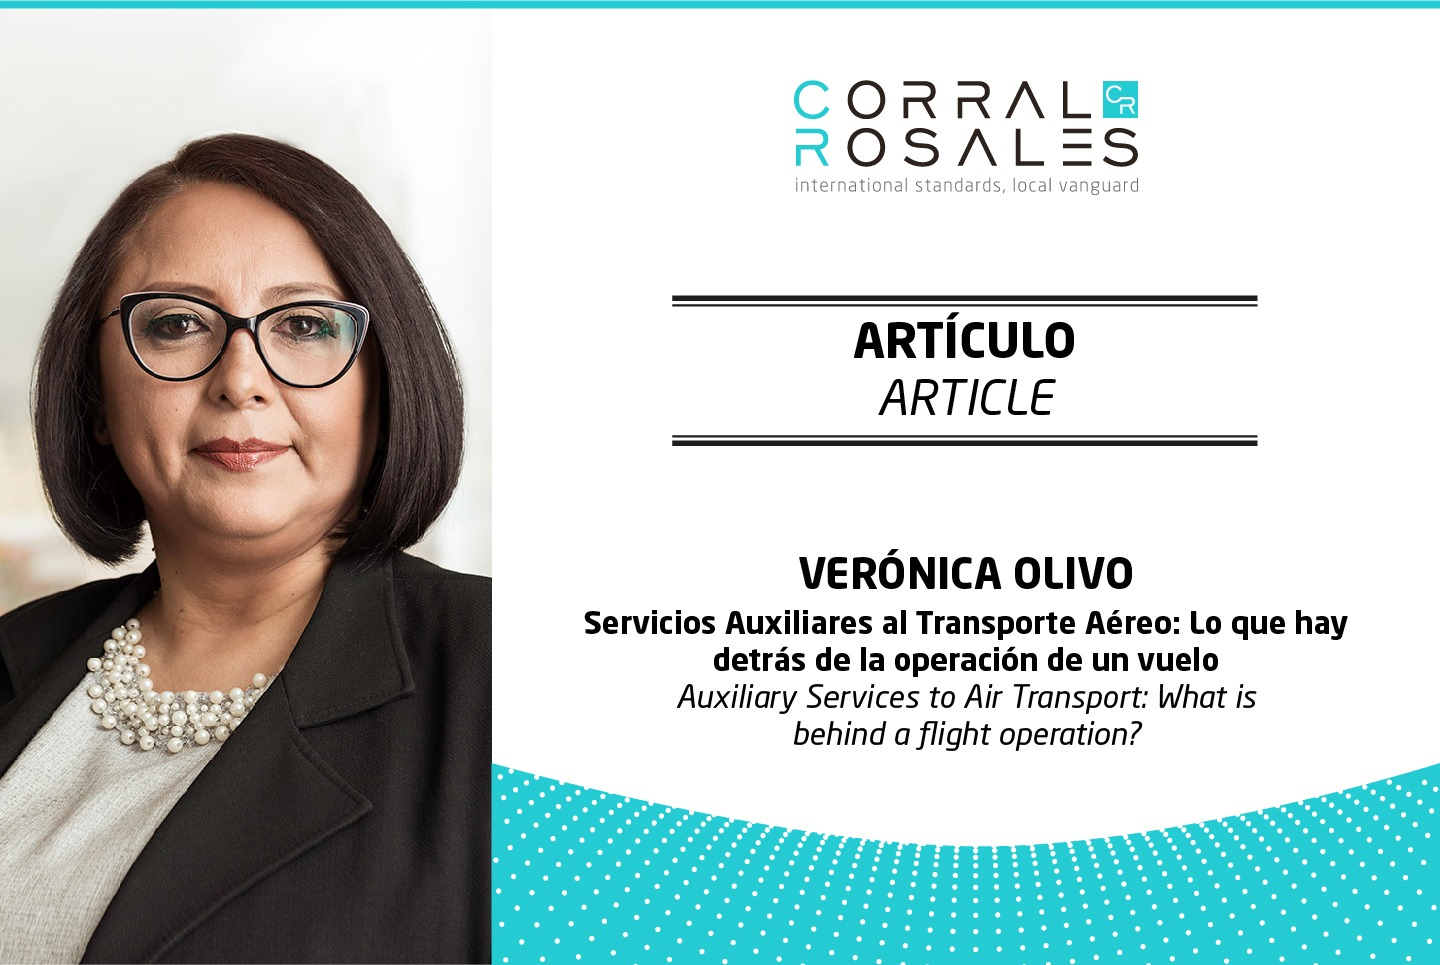 flight-operation-auxiliary-services-aviation-veronica-olivo